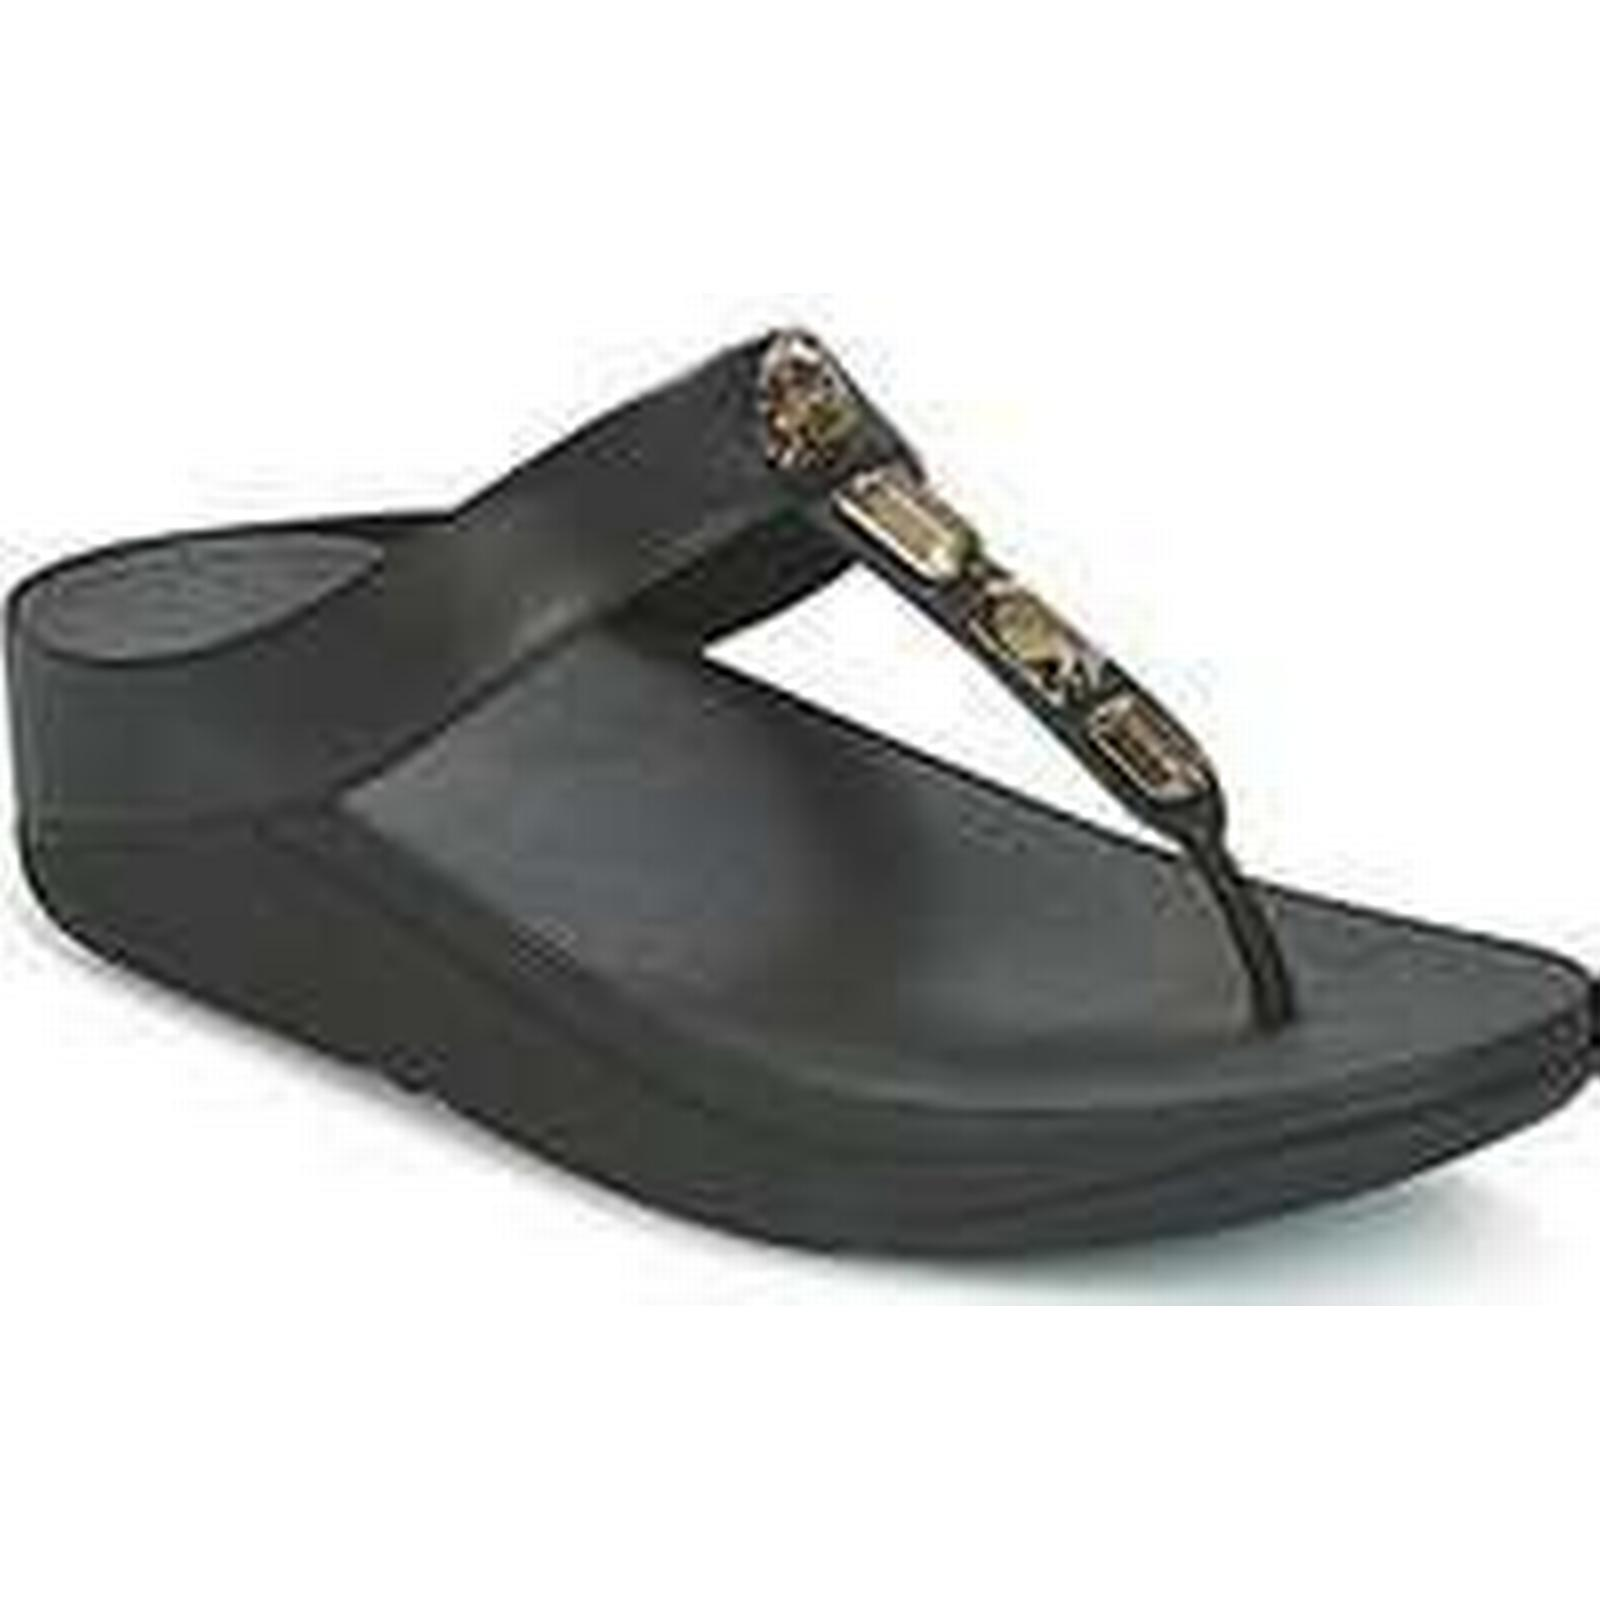 f4cacf8fcbe Spartoo.co.uk FitFlop ROKA TOE-THONG SANDALS women  x27 s Flip flops ...